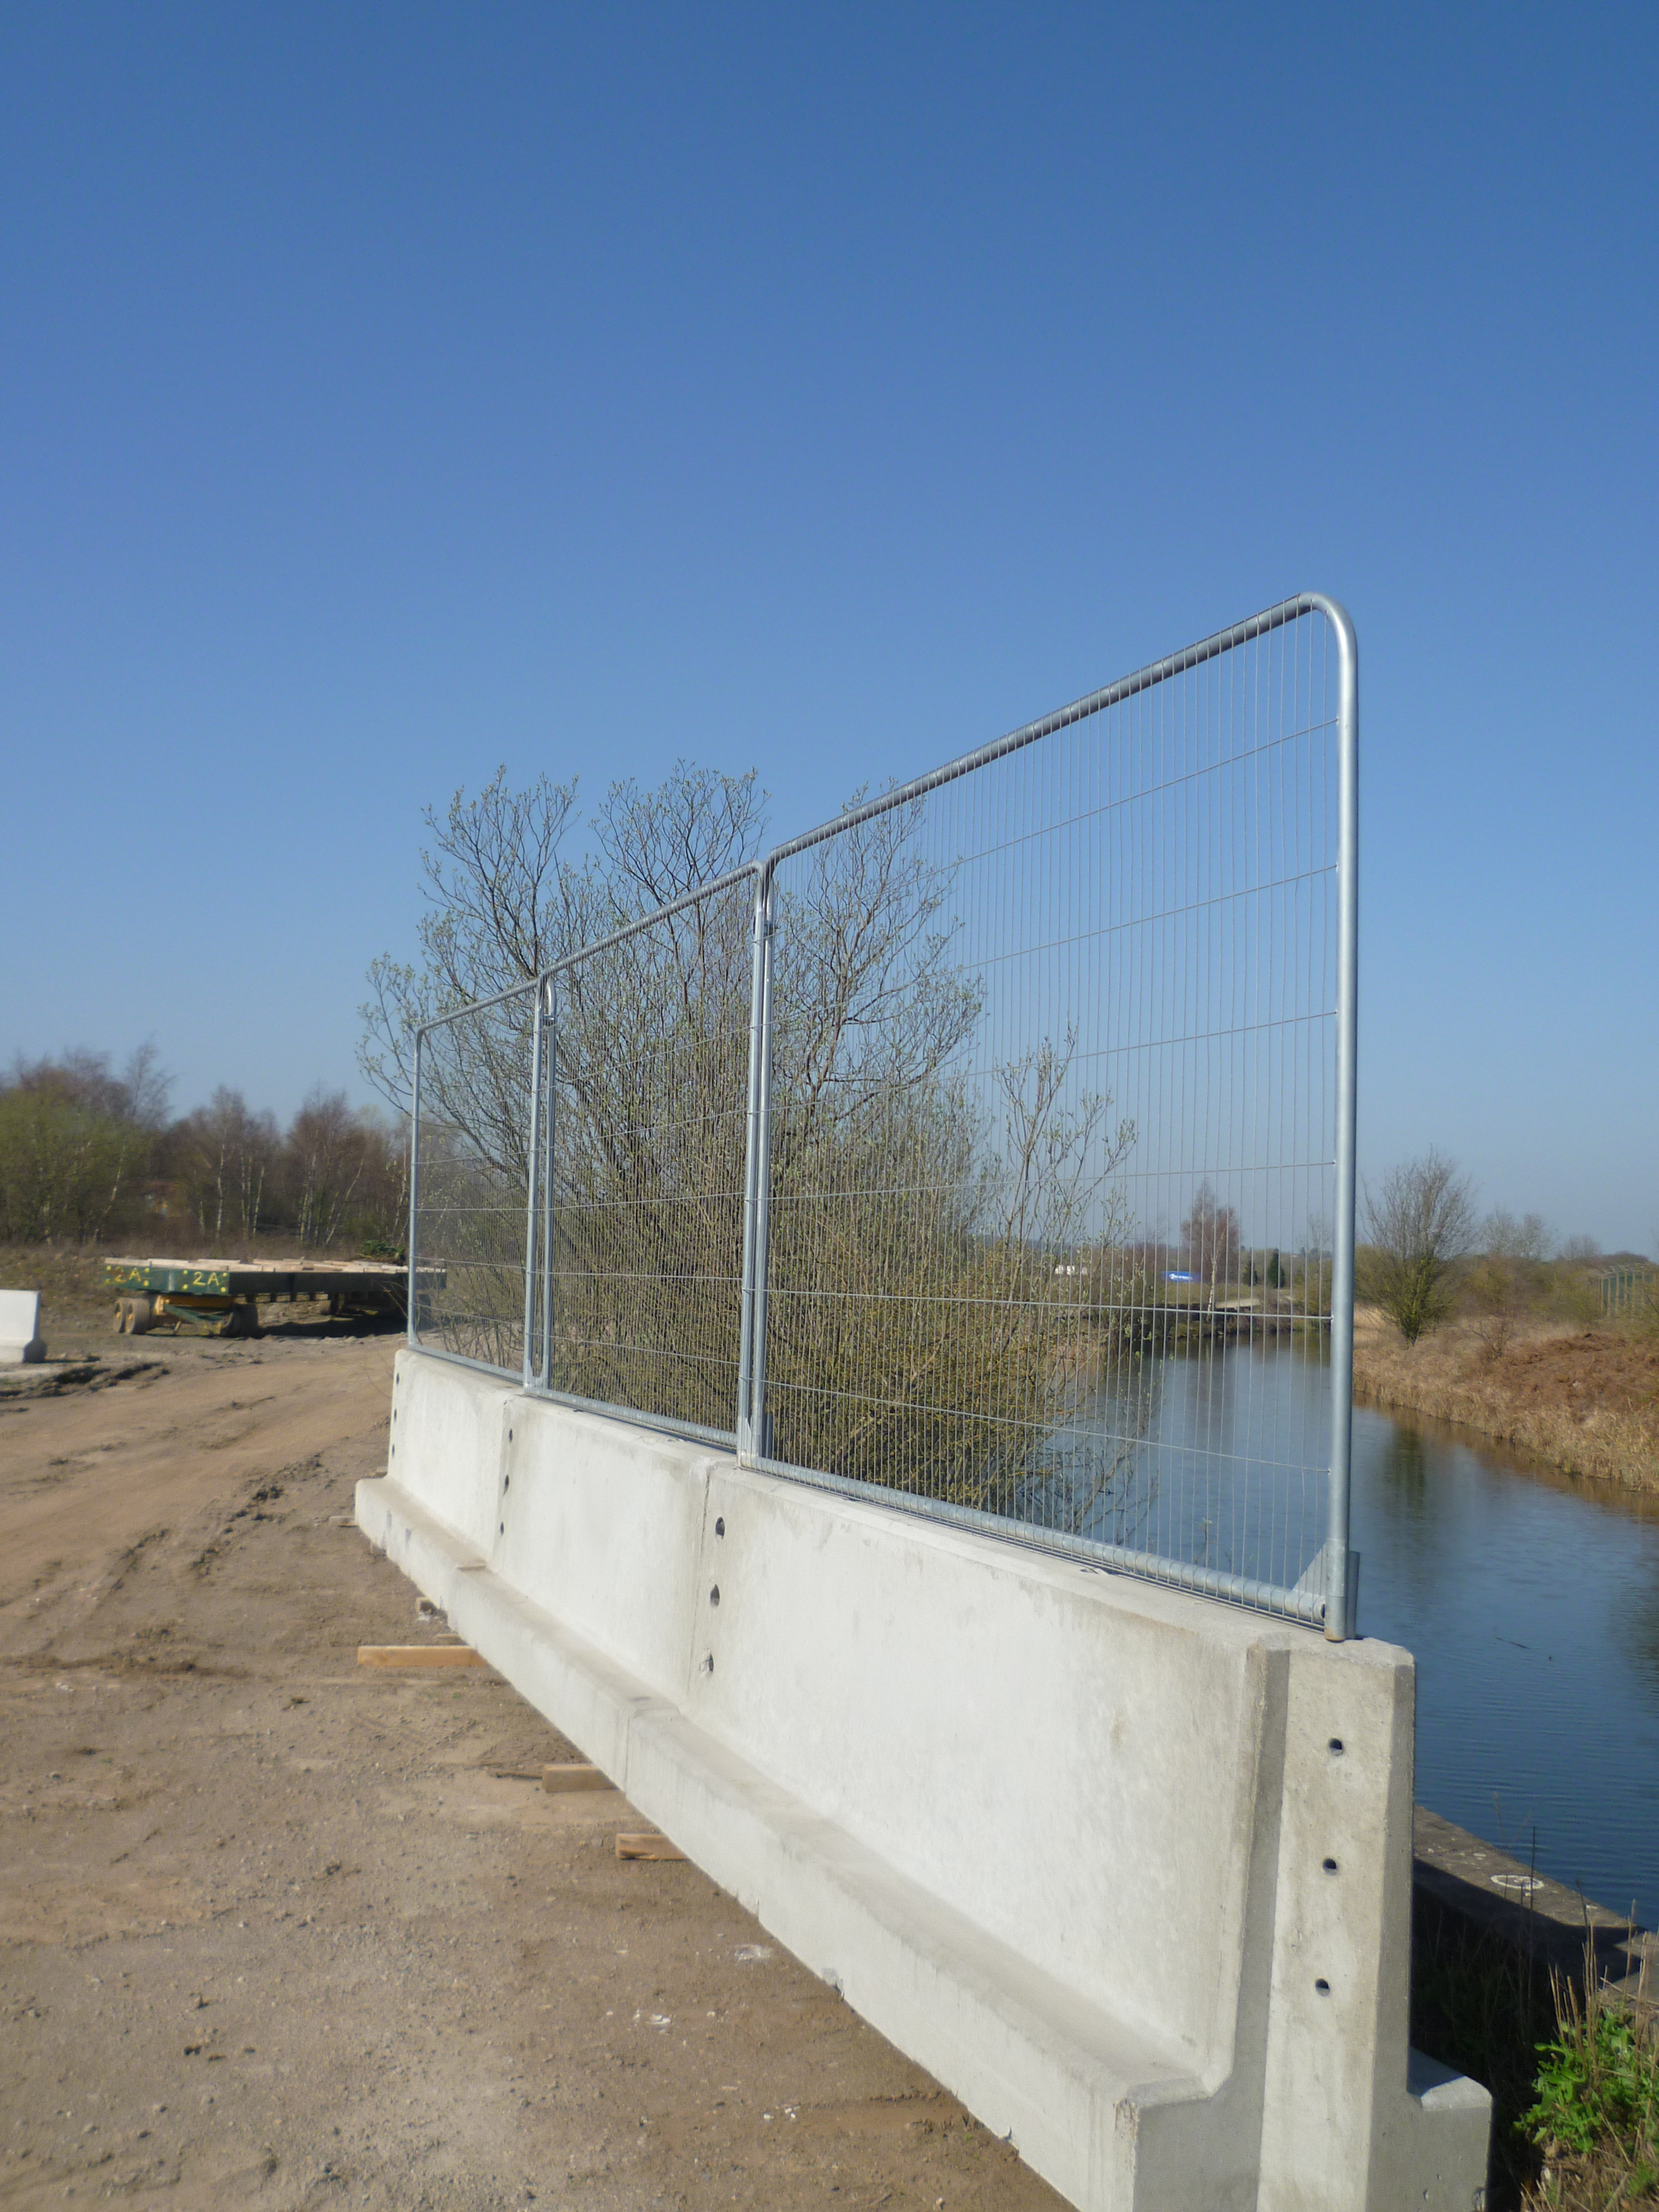 Concrete barrier images welcome to jp s